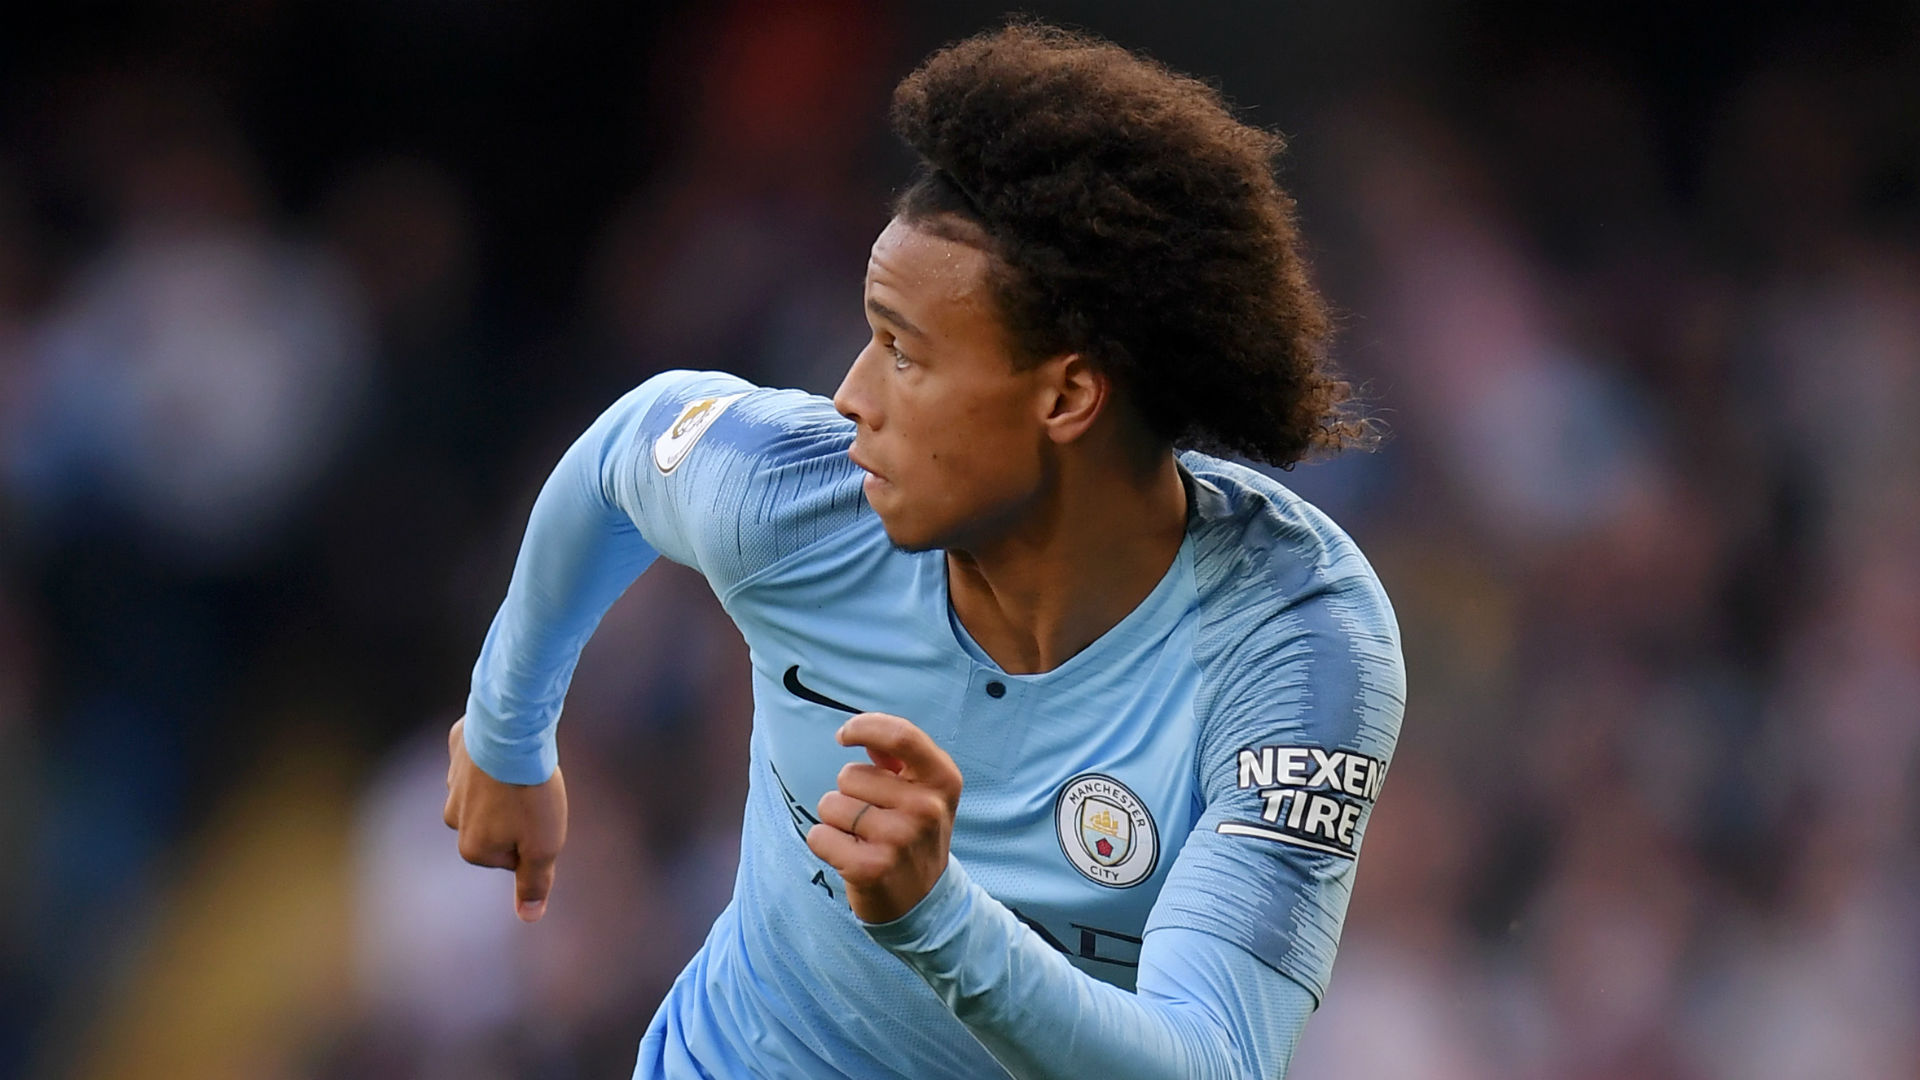 Sane spurred on by World Cup snub, Kroos criticism